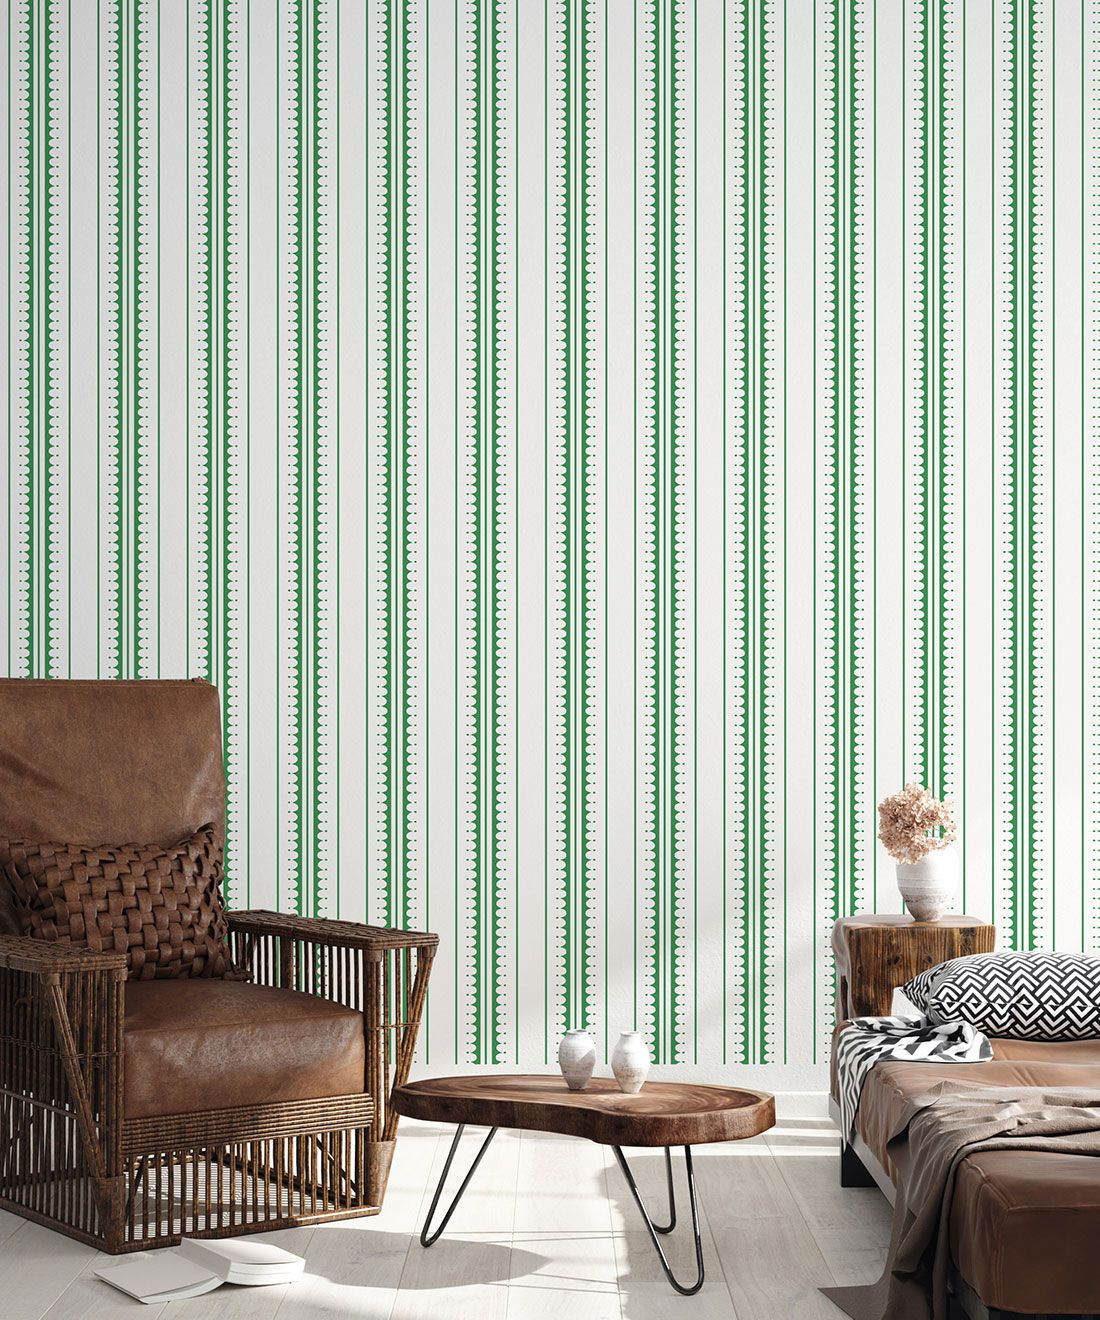 Coquille Wallpaper • Stripe and Scallop Wallpaper • Forest Green • Insitu